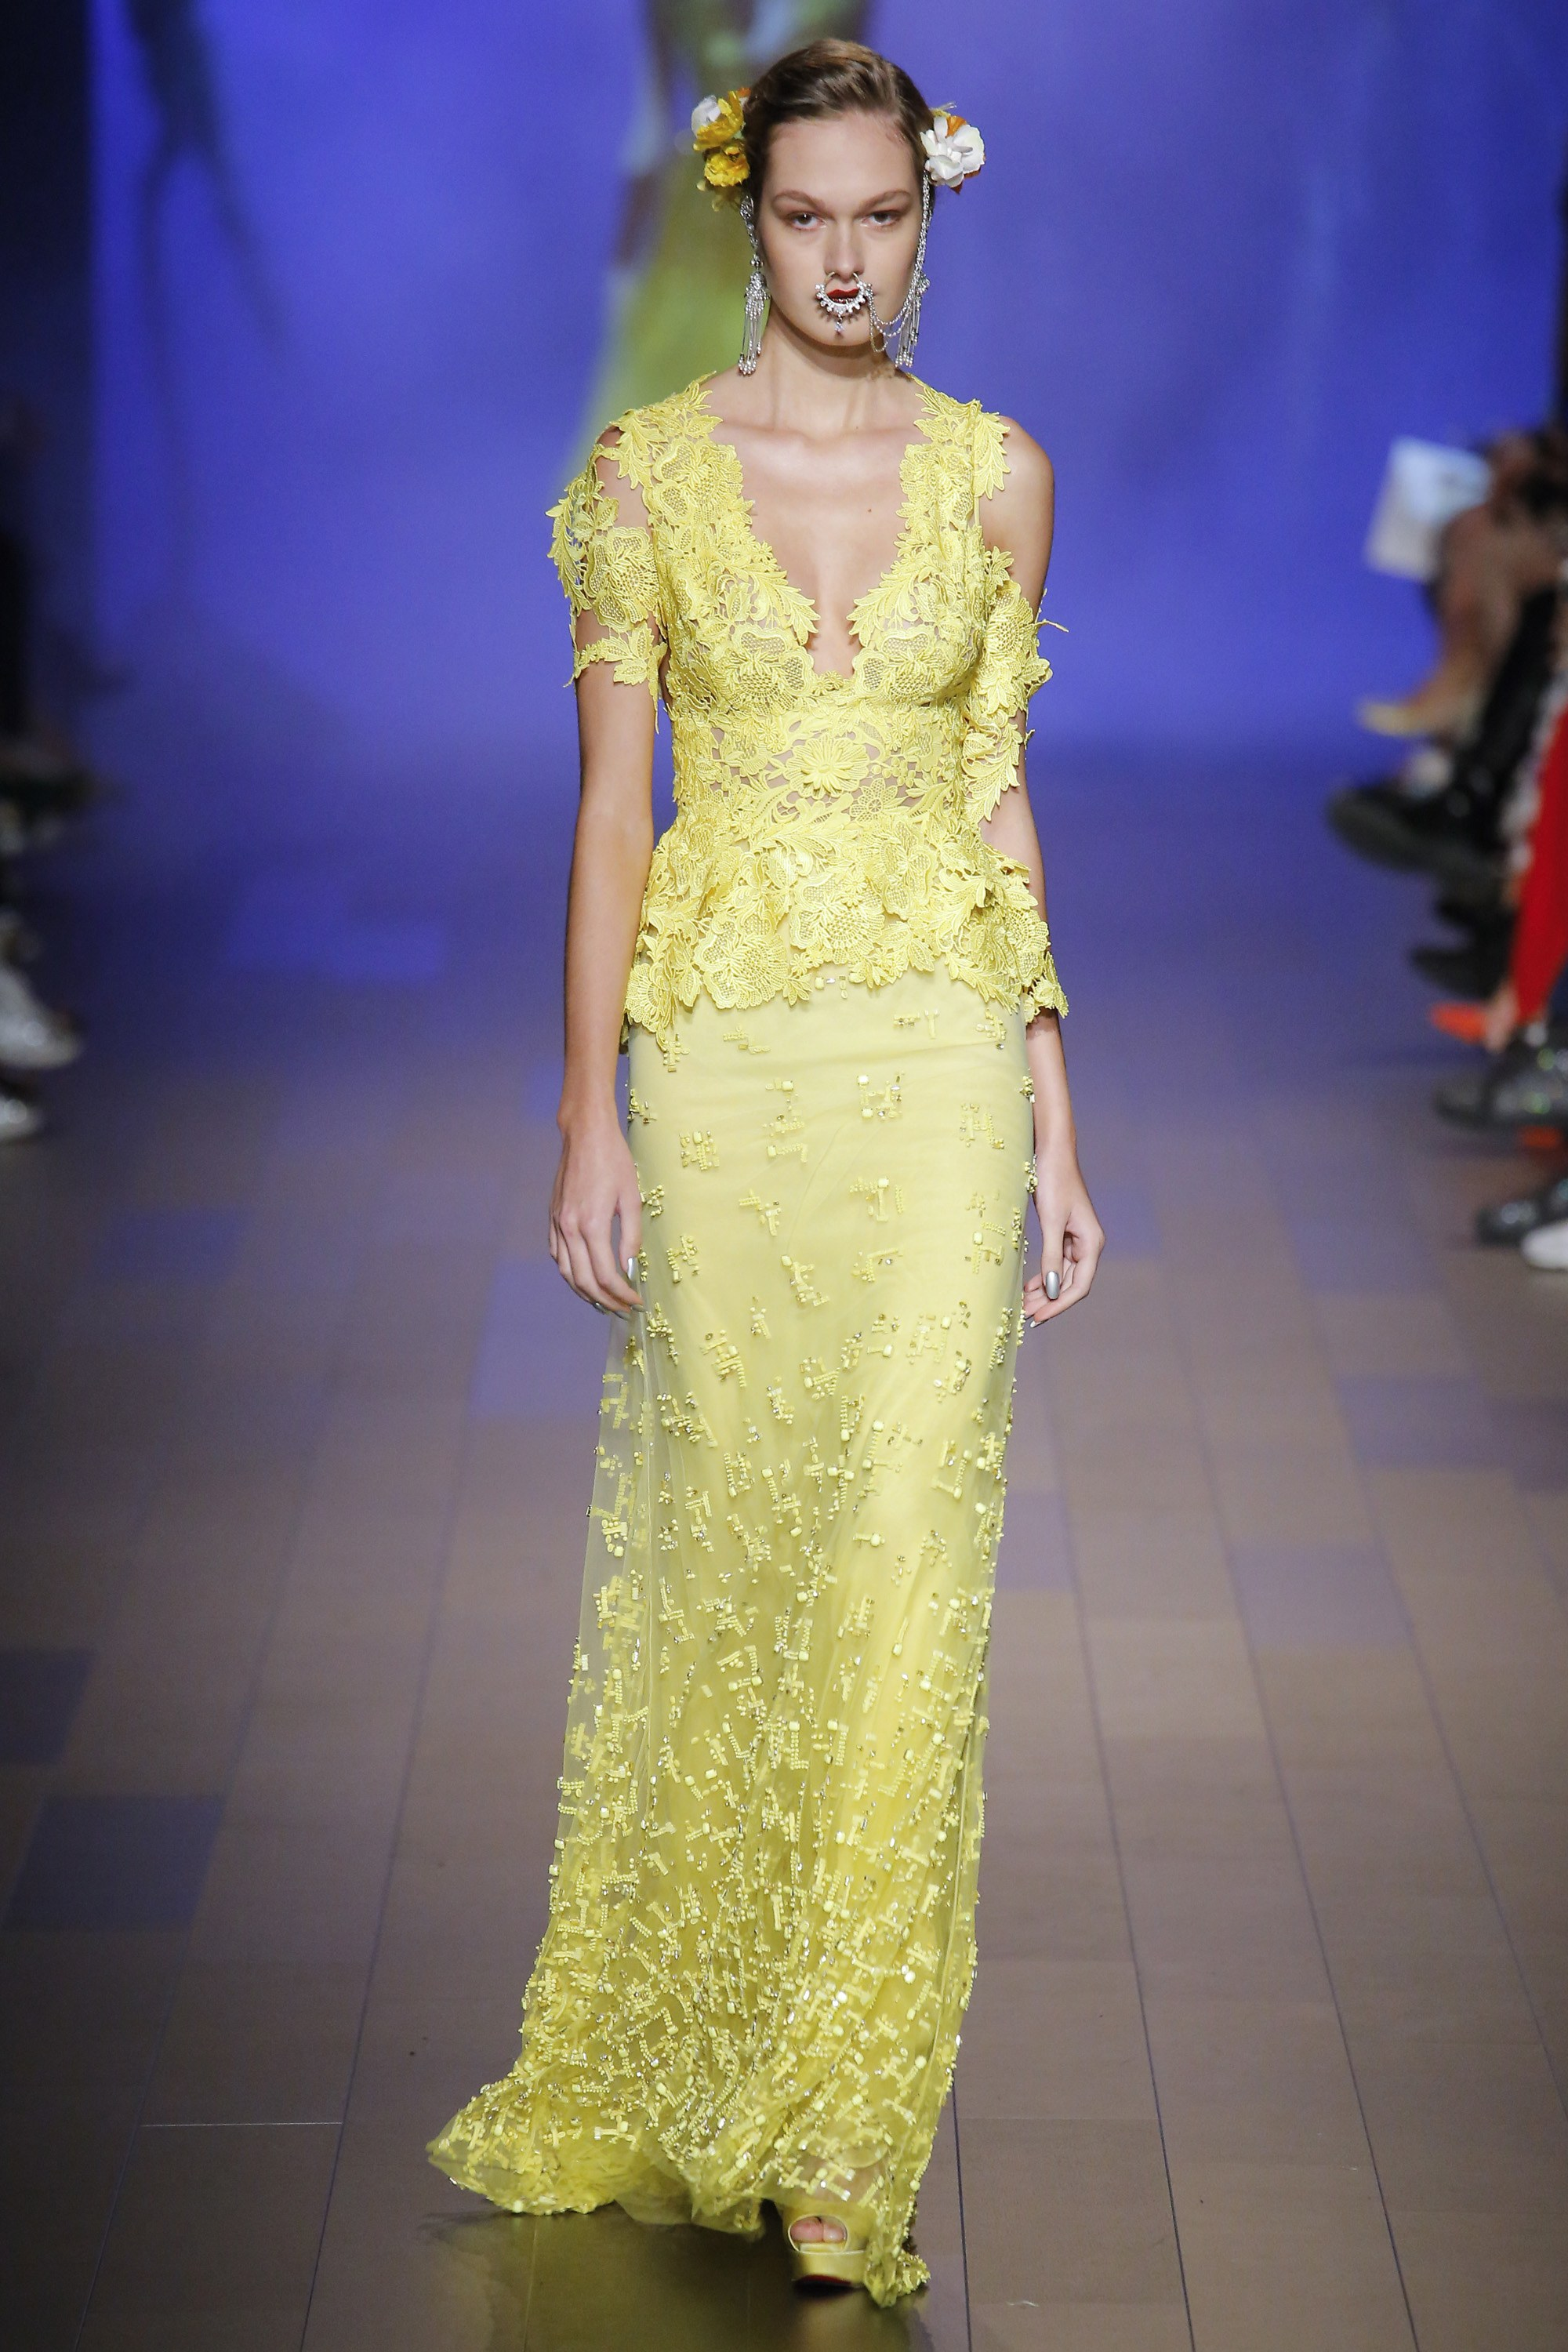 Vivaldi Boutique NYC Has The Naeem Khan Ready To Wear Collection For ...